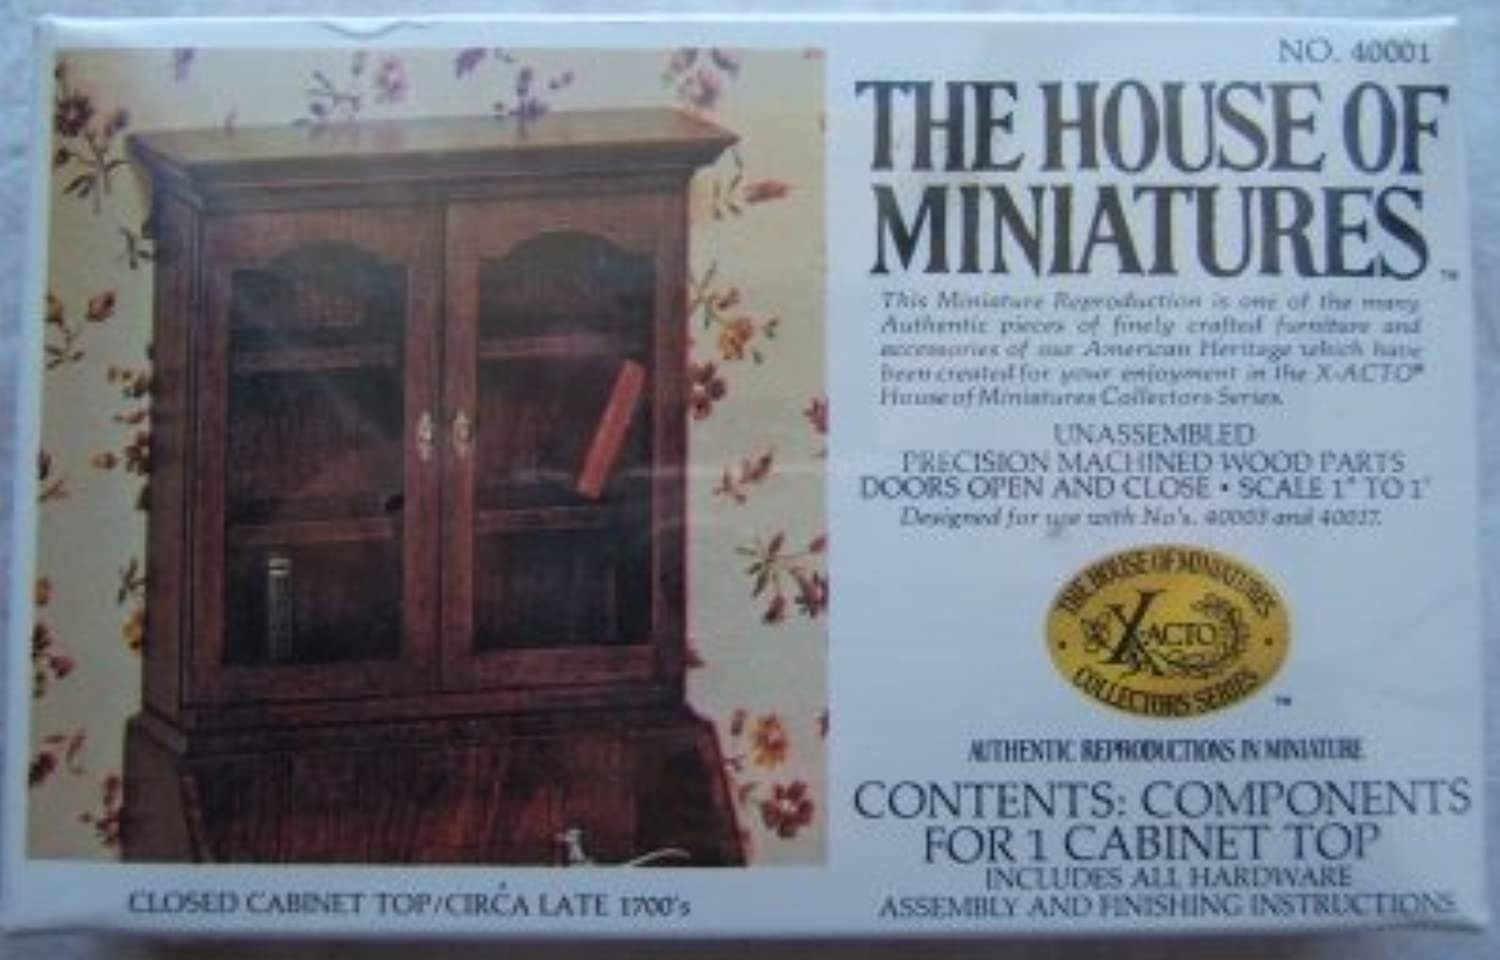 The House of Miniatures Closed Cabinet Top by The House of Miniatures